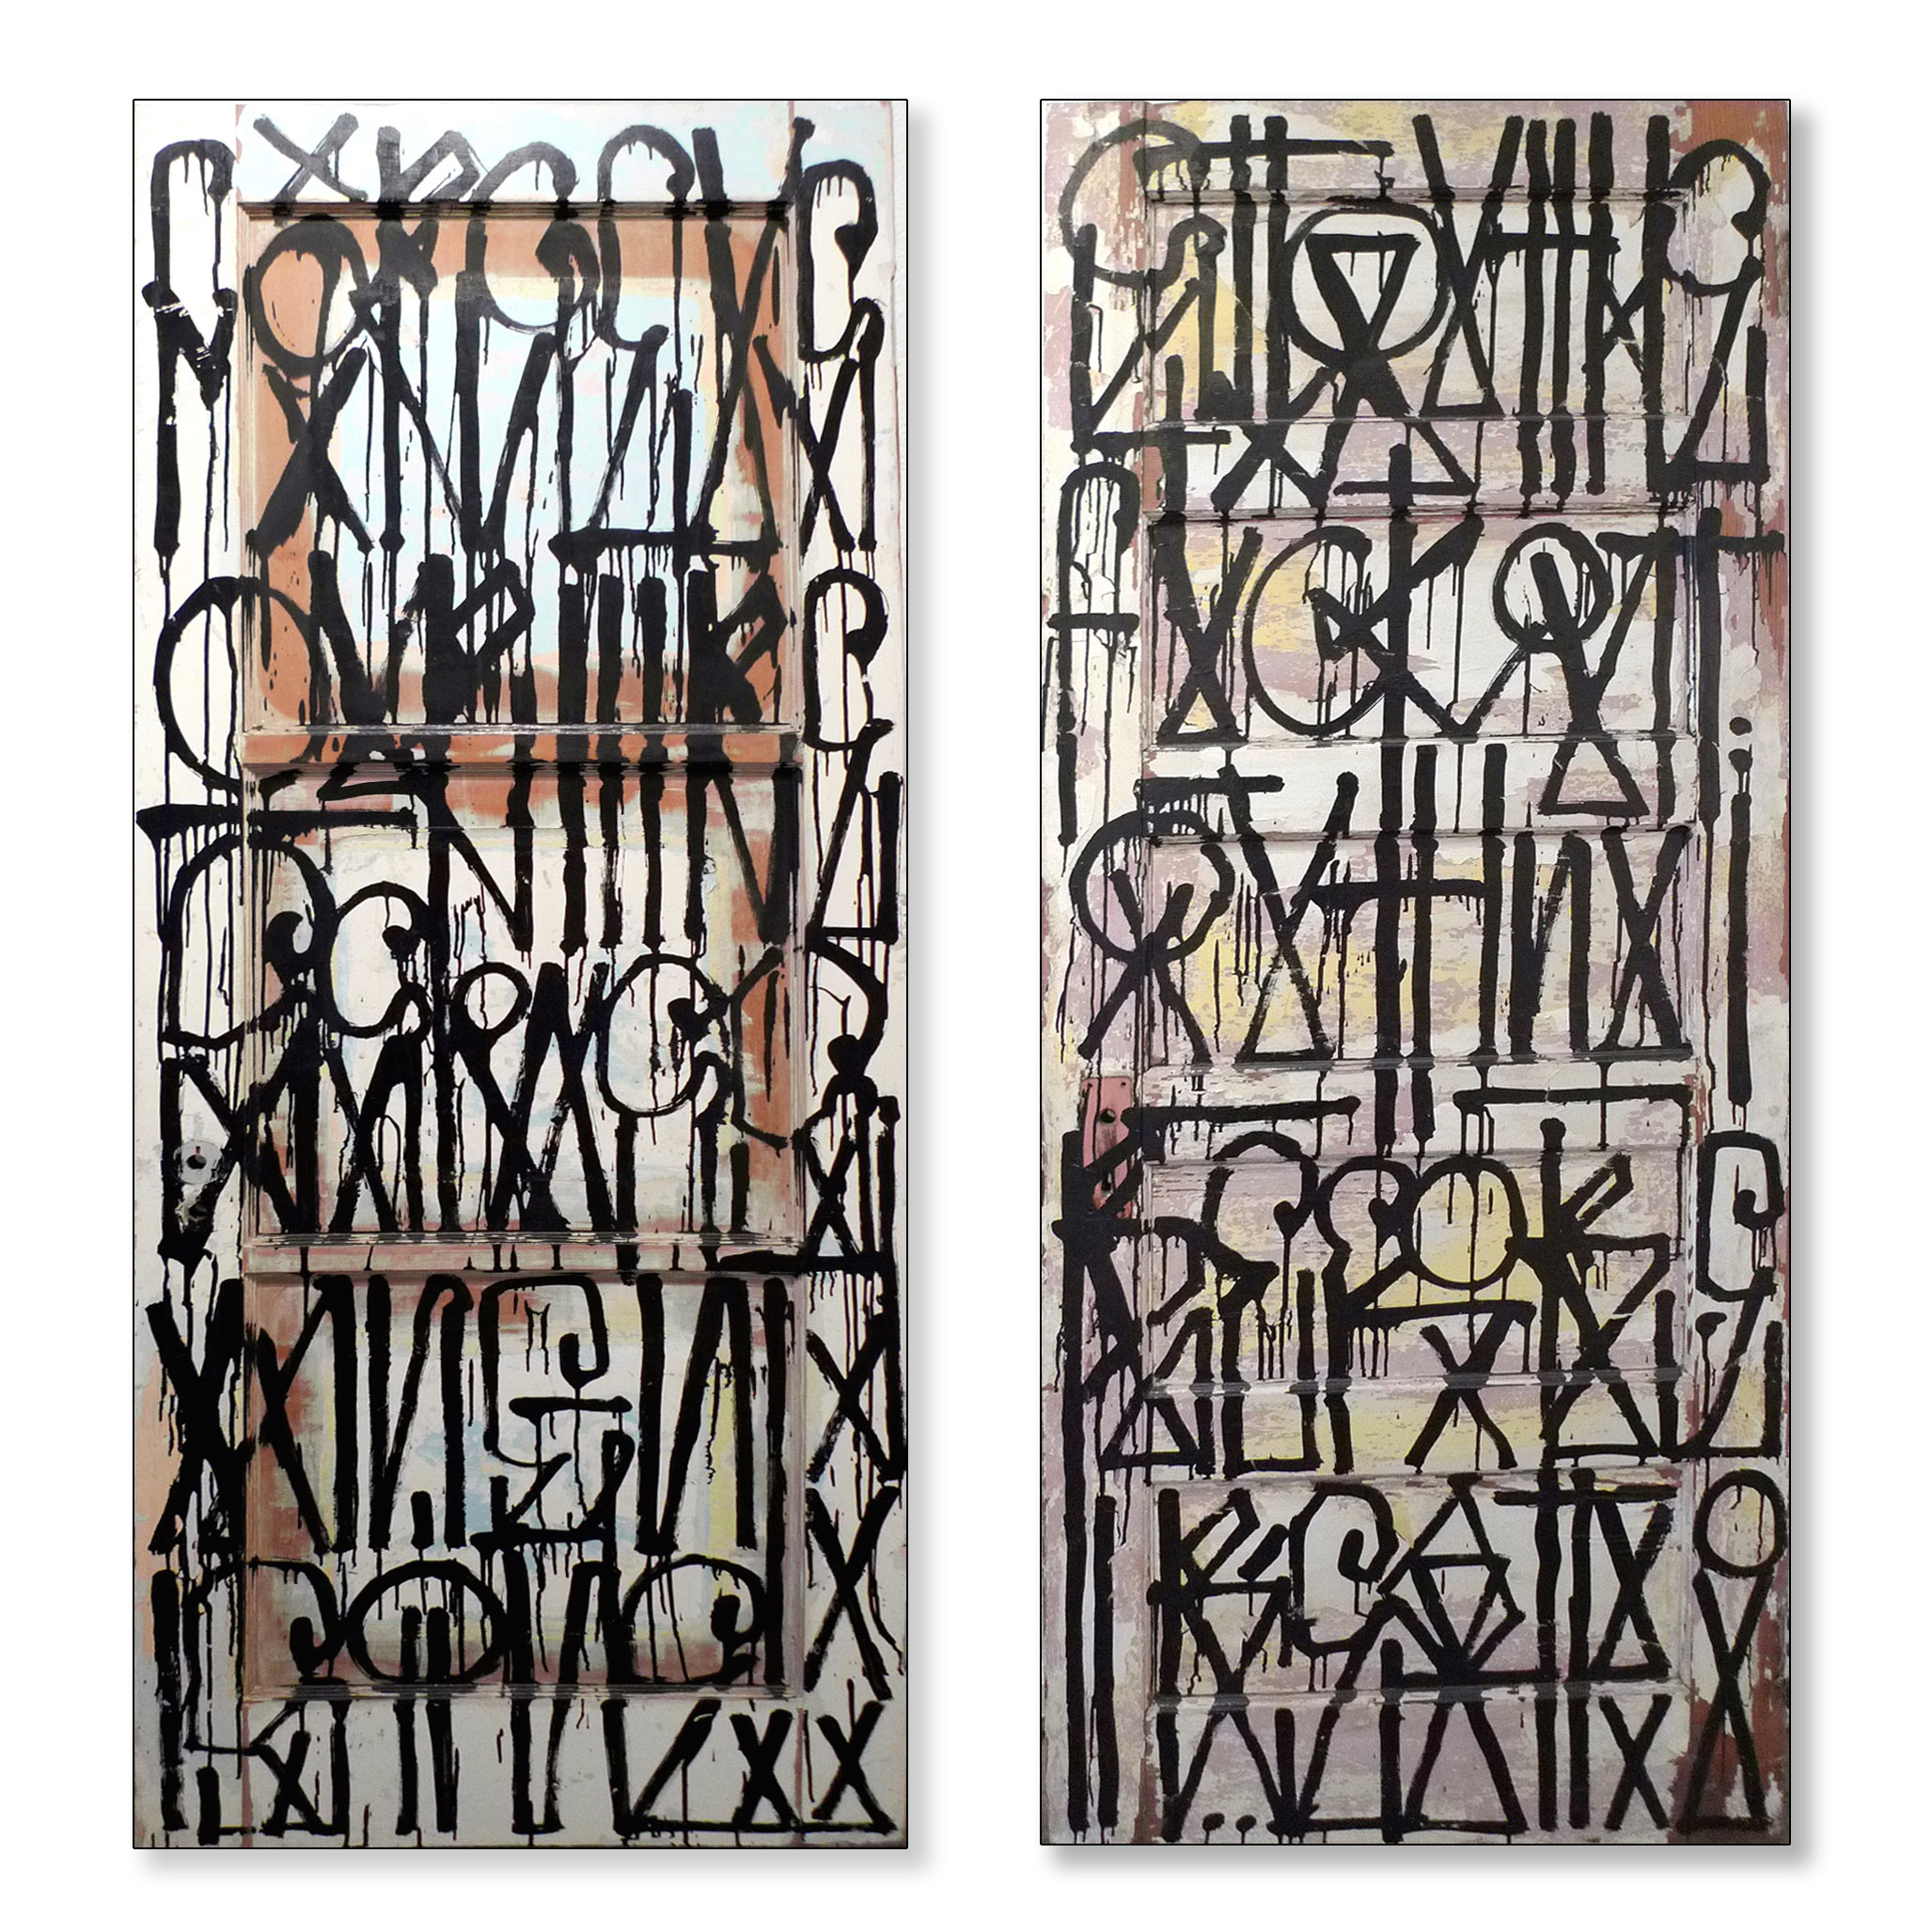 RETNA / Untitled / 2011 / Enamel on found doors (2 panels) / 98 x 60 inches